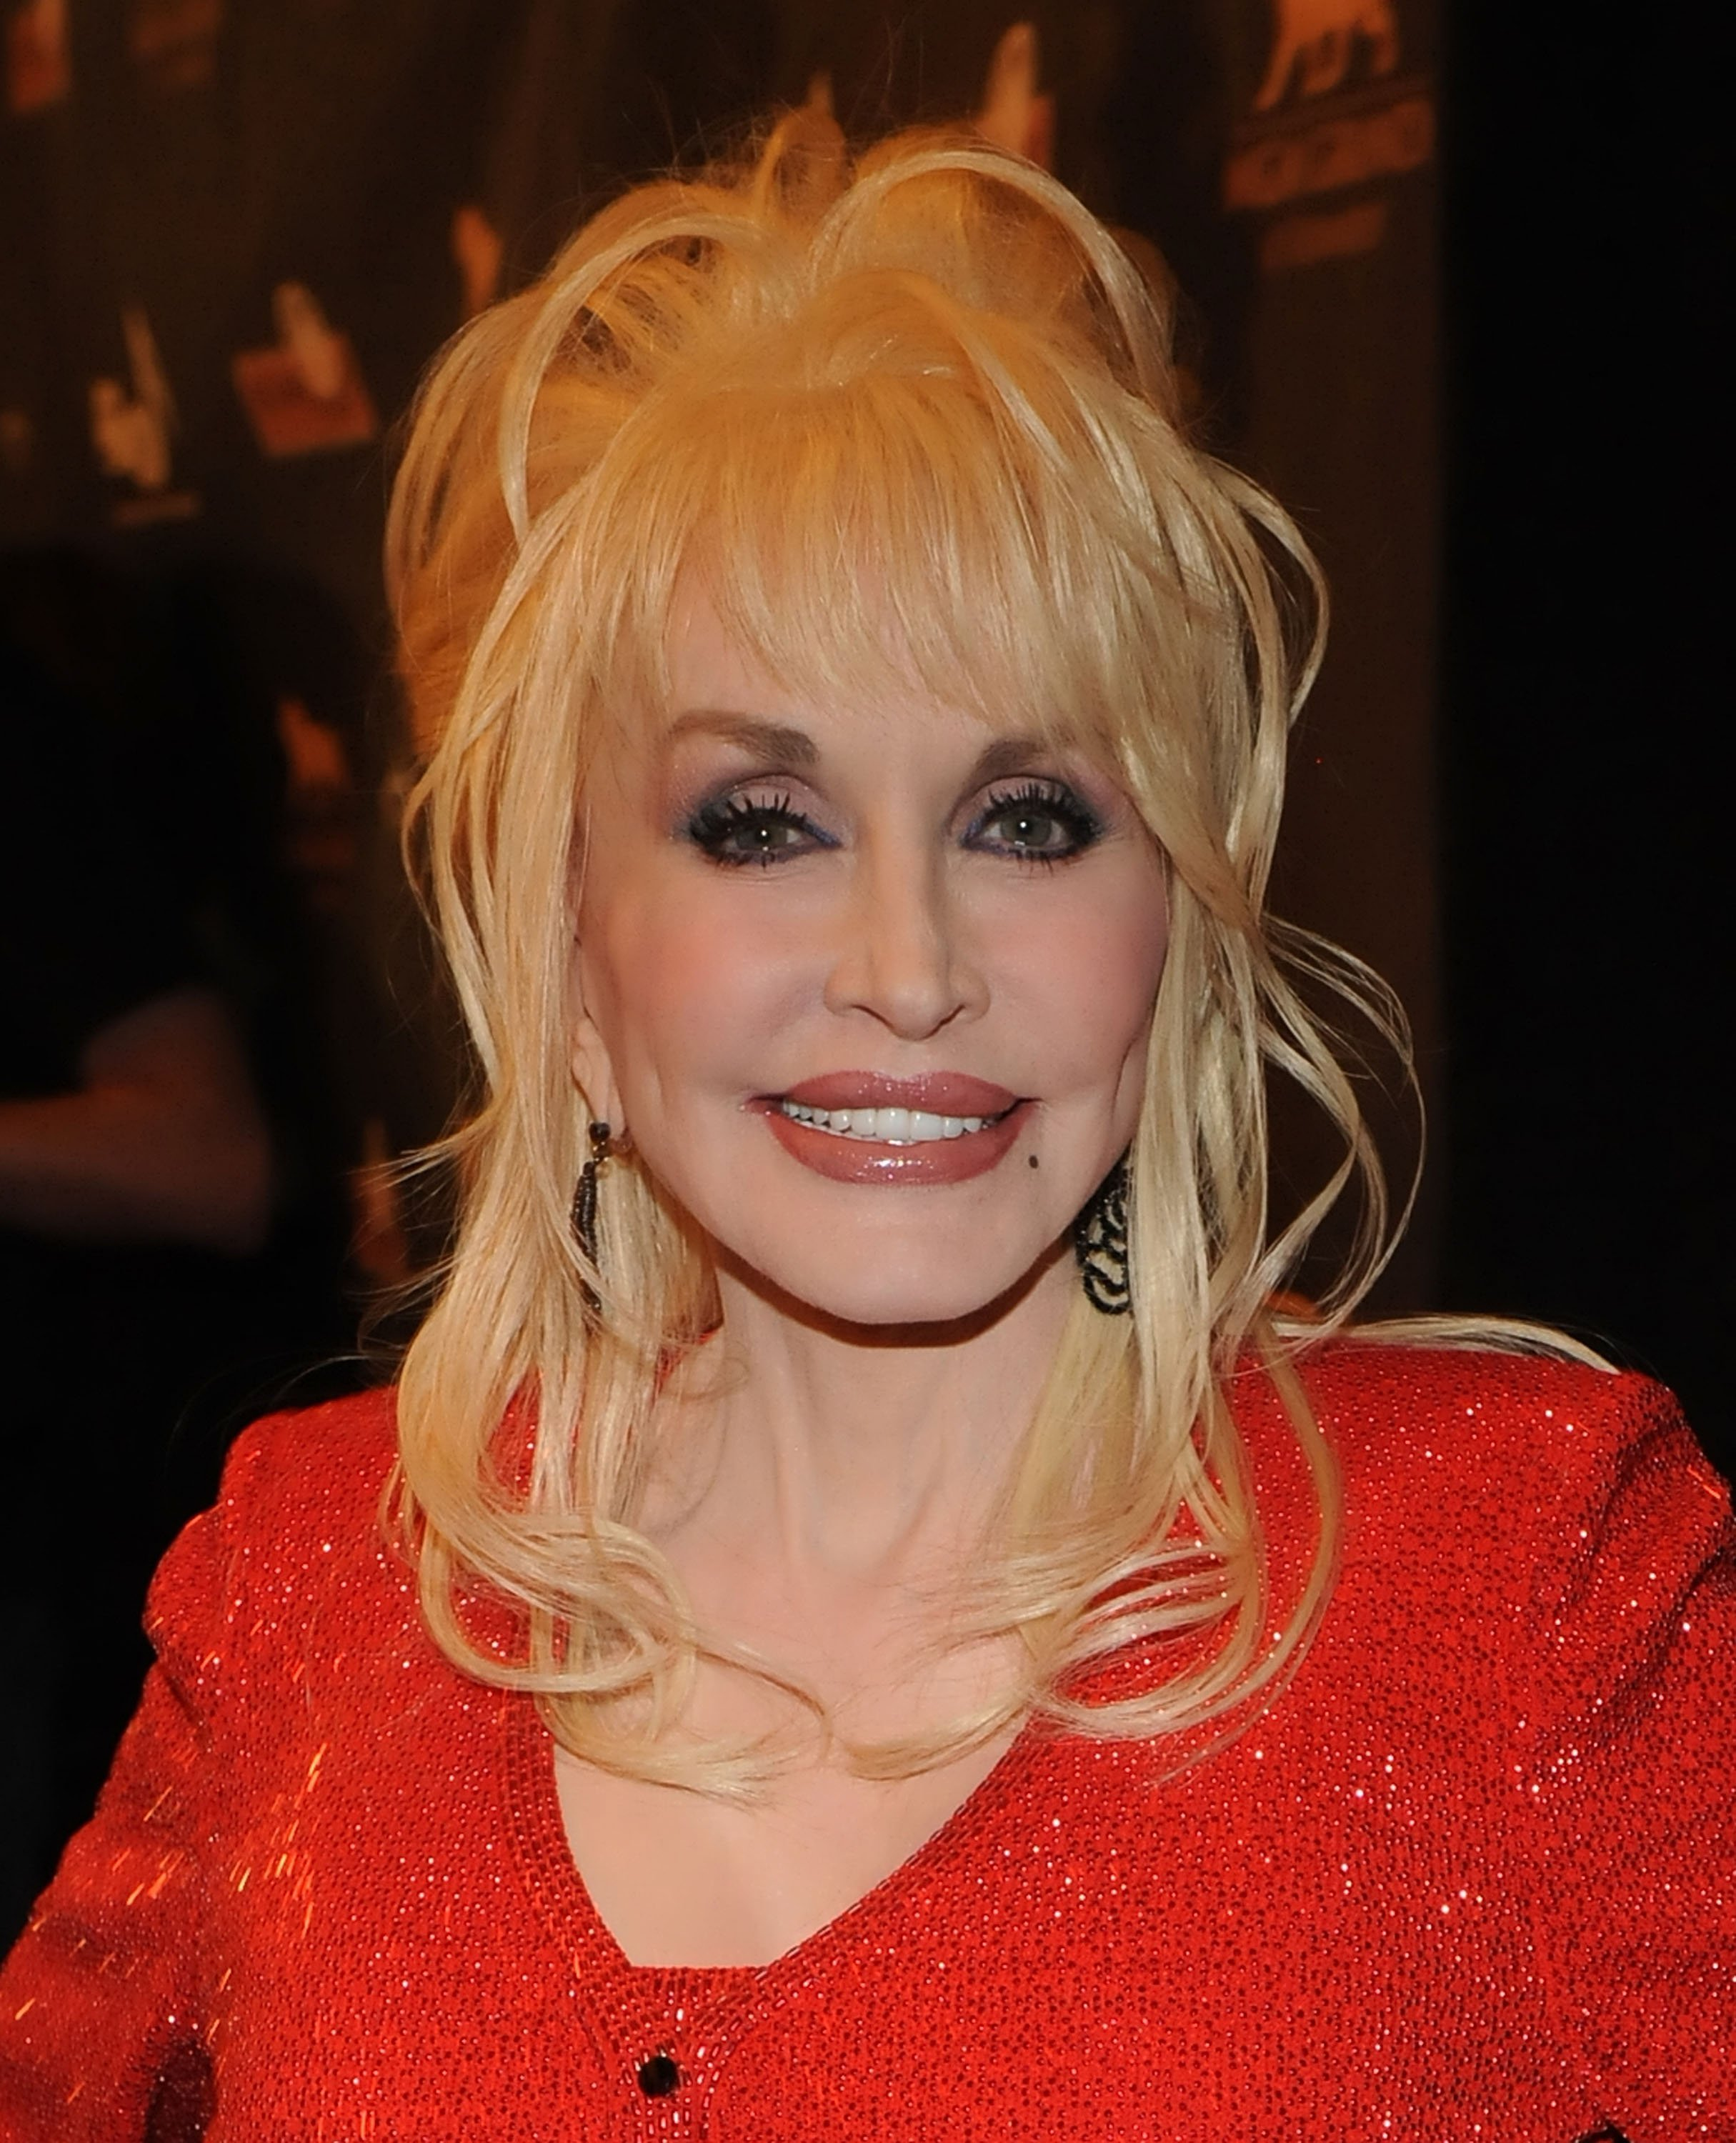 Dolly Parton attends the Kenny Rogers: The First 50 Years award show in Ledyard Center, Connecticut on April 10, 2010 | Photo: Getty Images